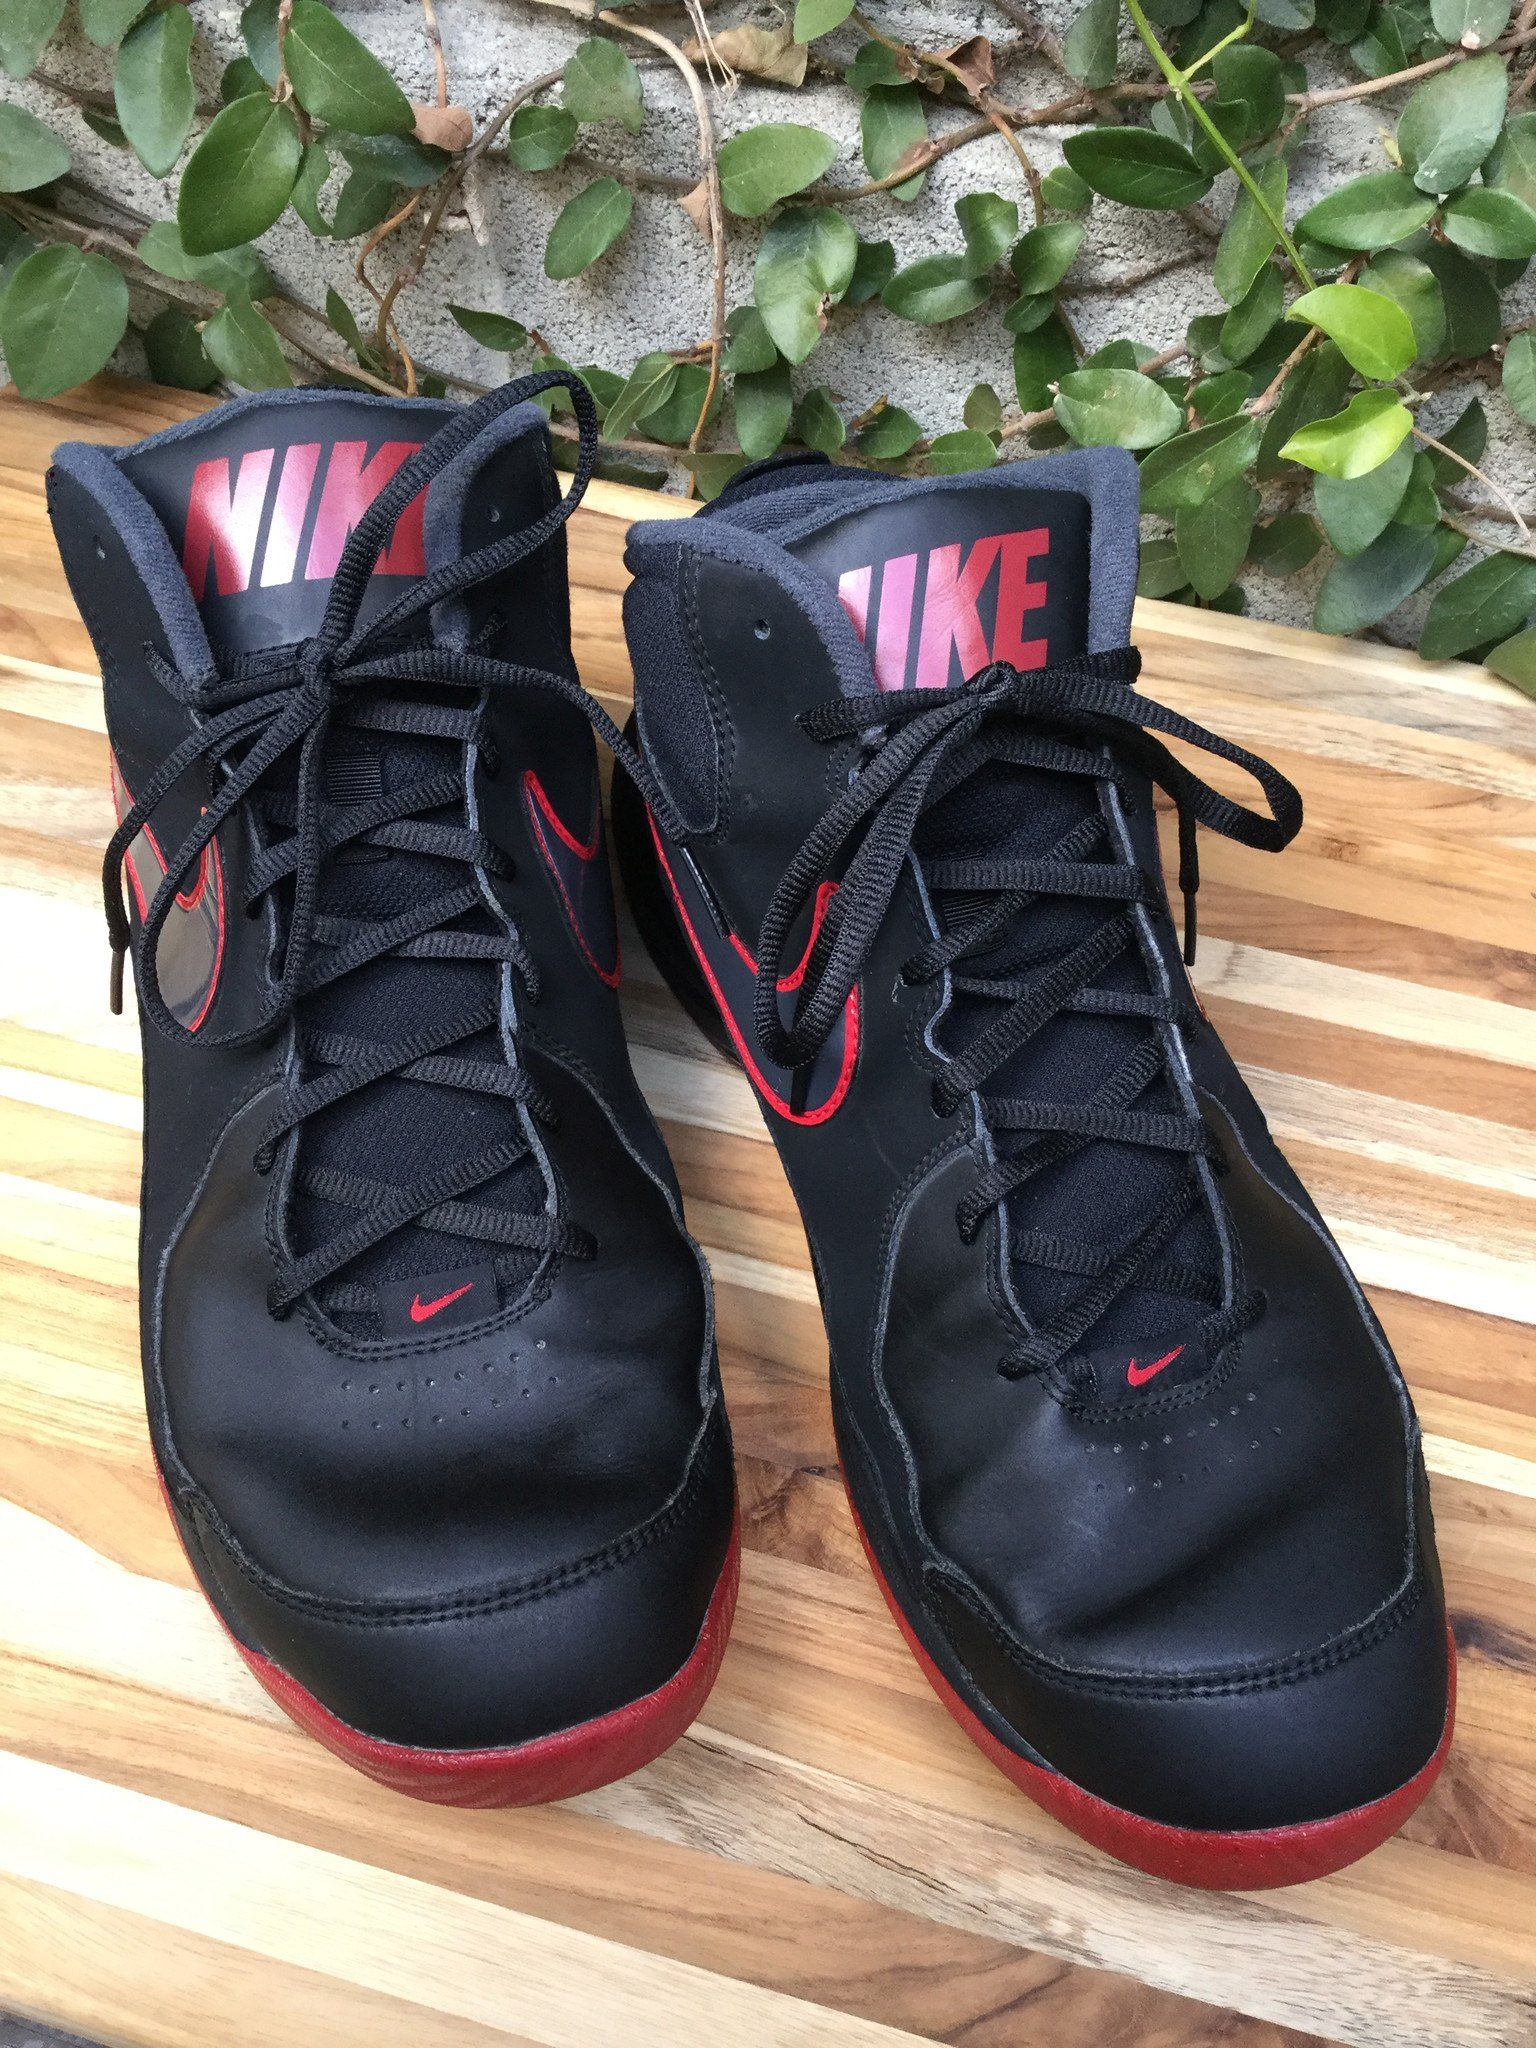 ed5c49217b6768 Nike Overplay VII High Top Basketball Shoe in Black   Red  thegoldenfind   fashion  style  mensfashion  fashionnews  menstyle